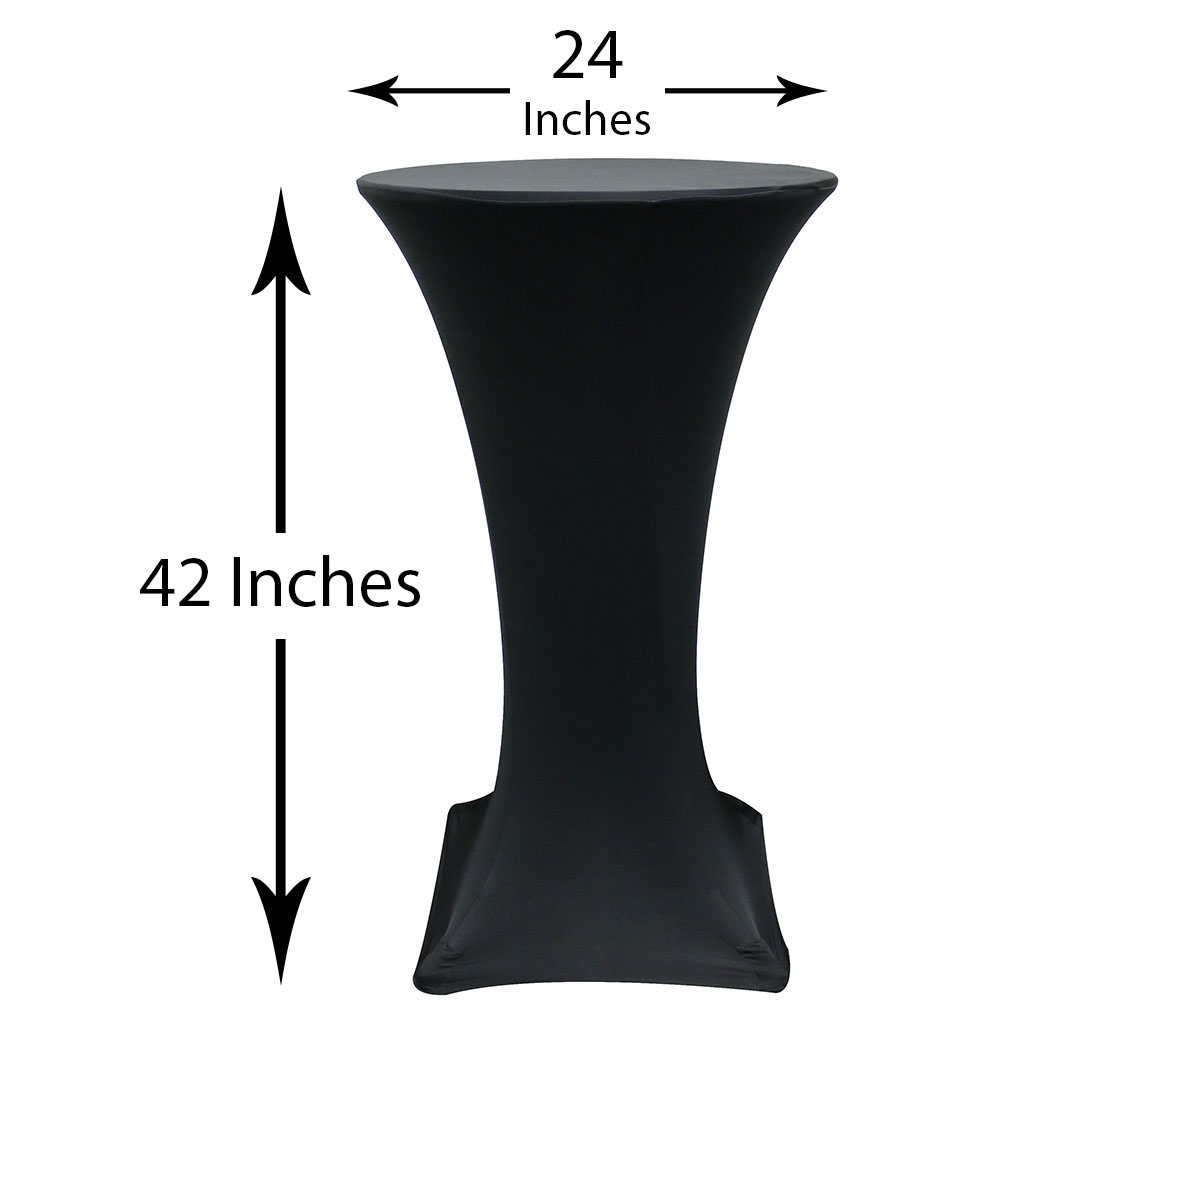 24-inch-highboy-cocktail-spandex-table-covers-black-dimensions.jpg